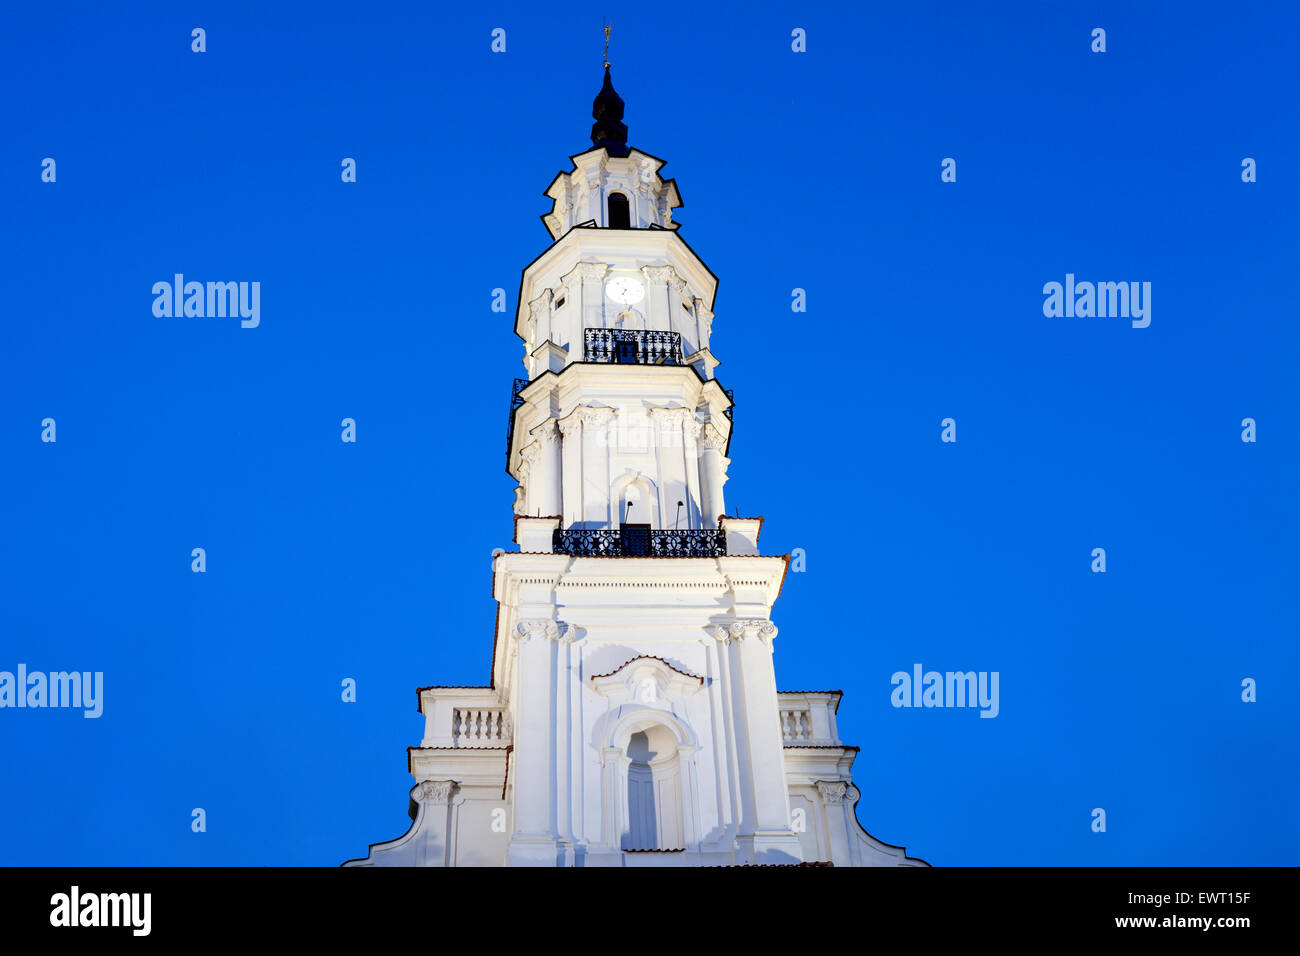 Town Hall, Kaunas, Lithuania. - Stock Image